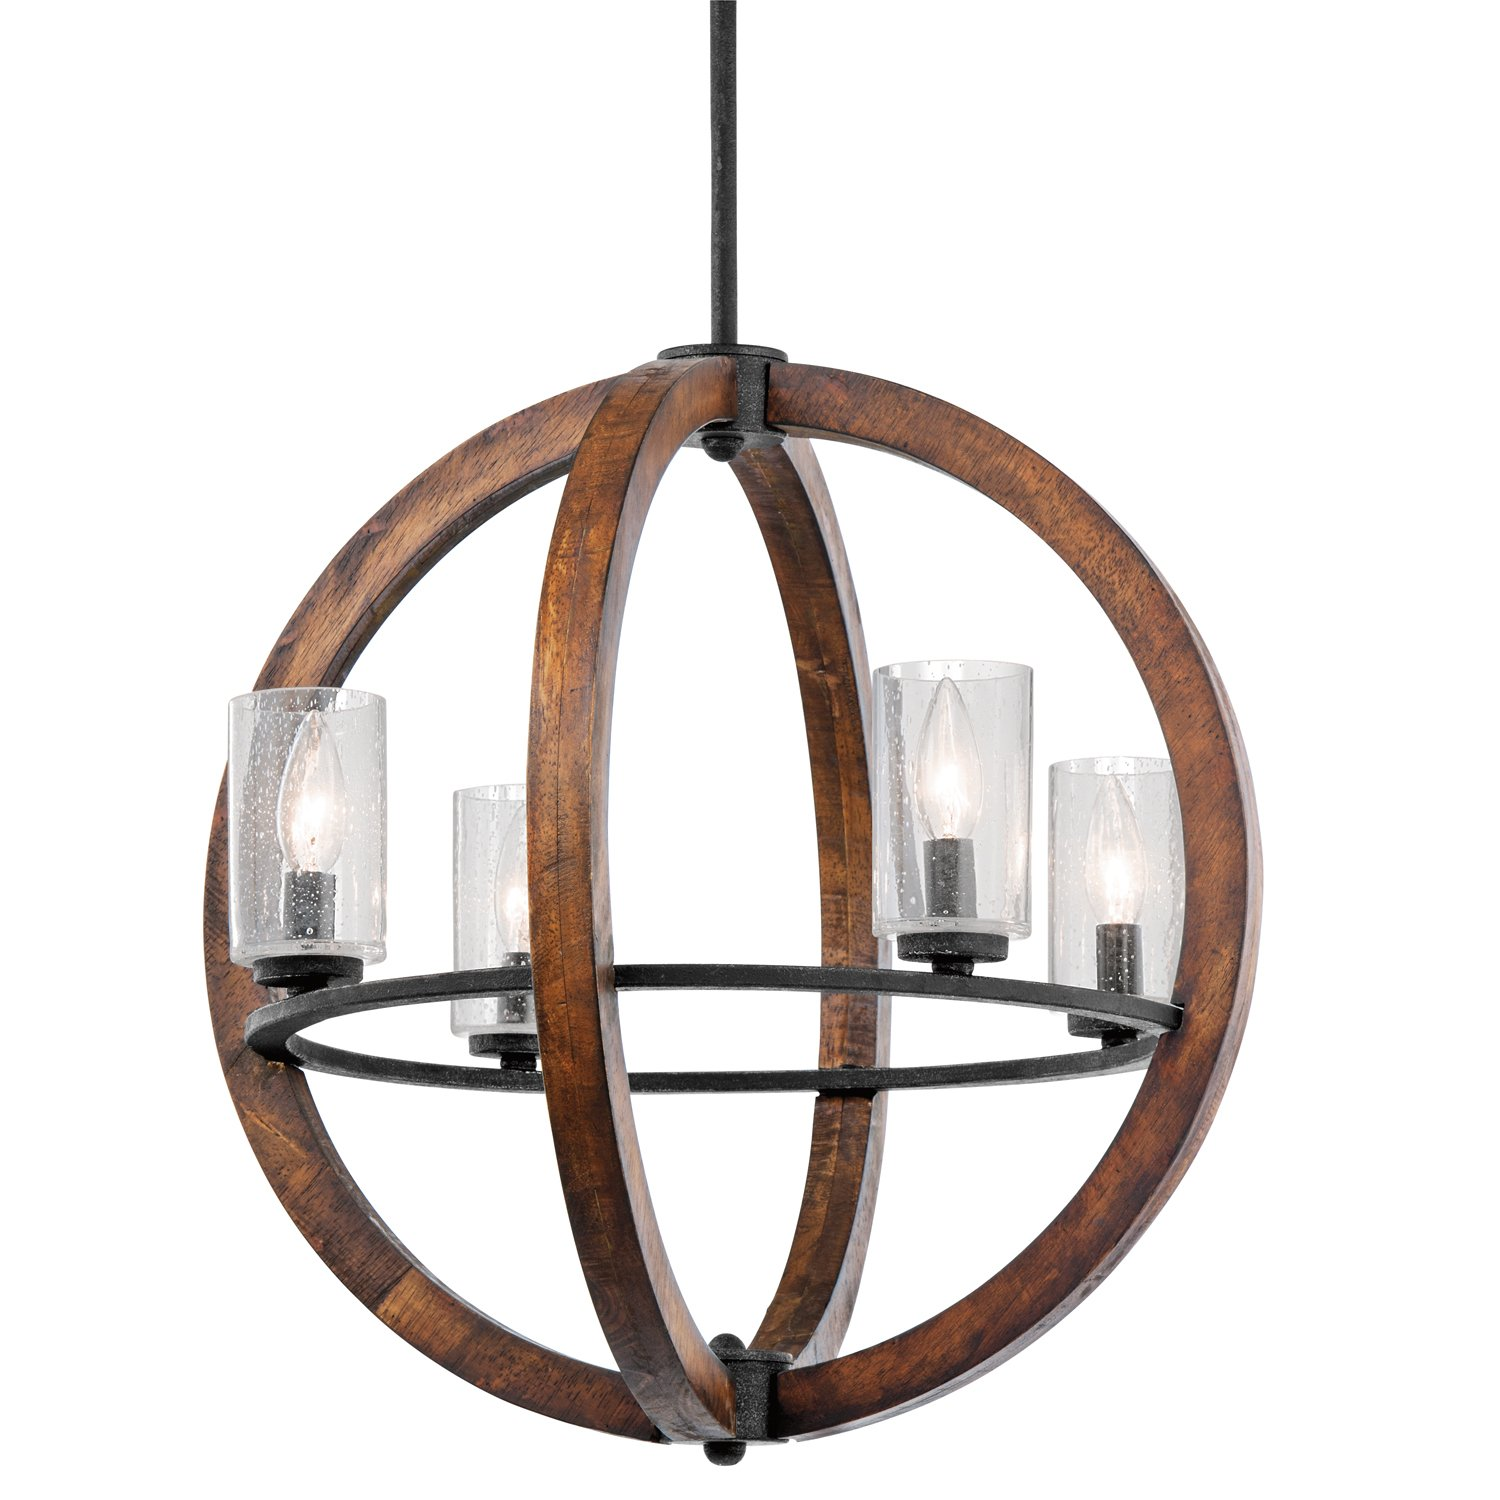 Kichler AUB Four Light Chandelier Rustic Chandelier